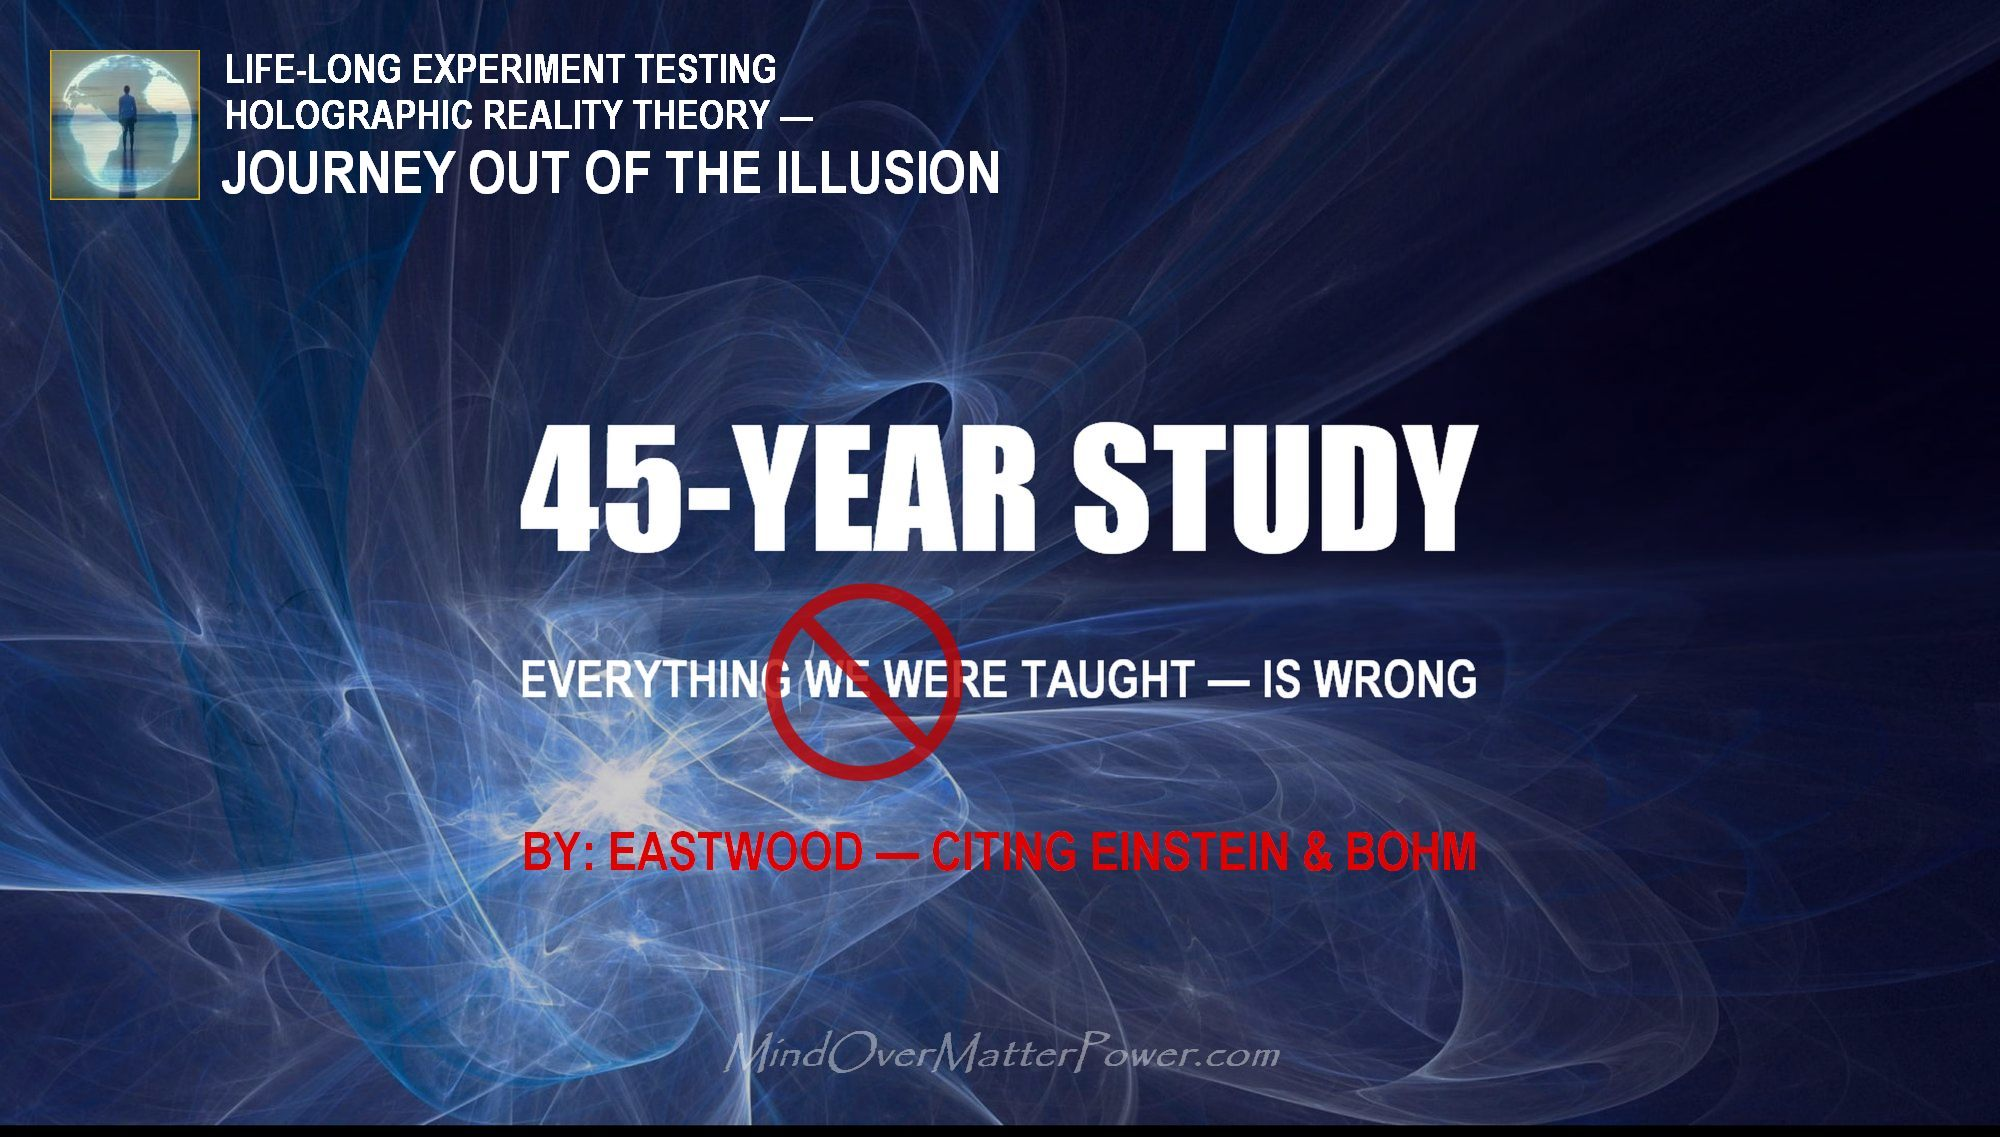 A 45-year study testing holographic universe theory. Metaphysical principles applied and tested by Eastwood.